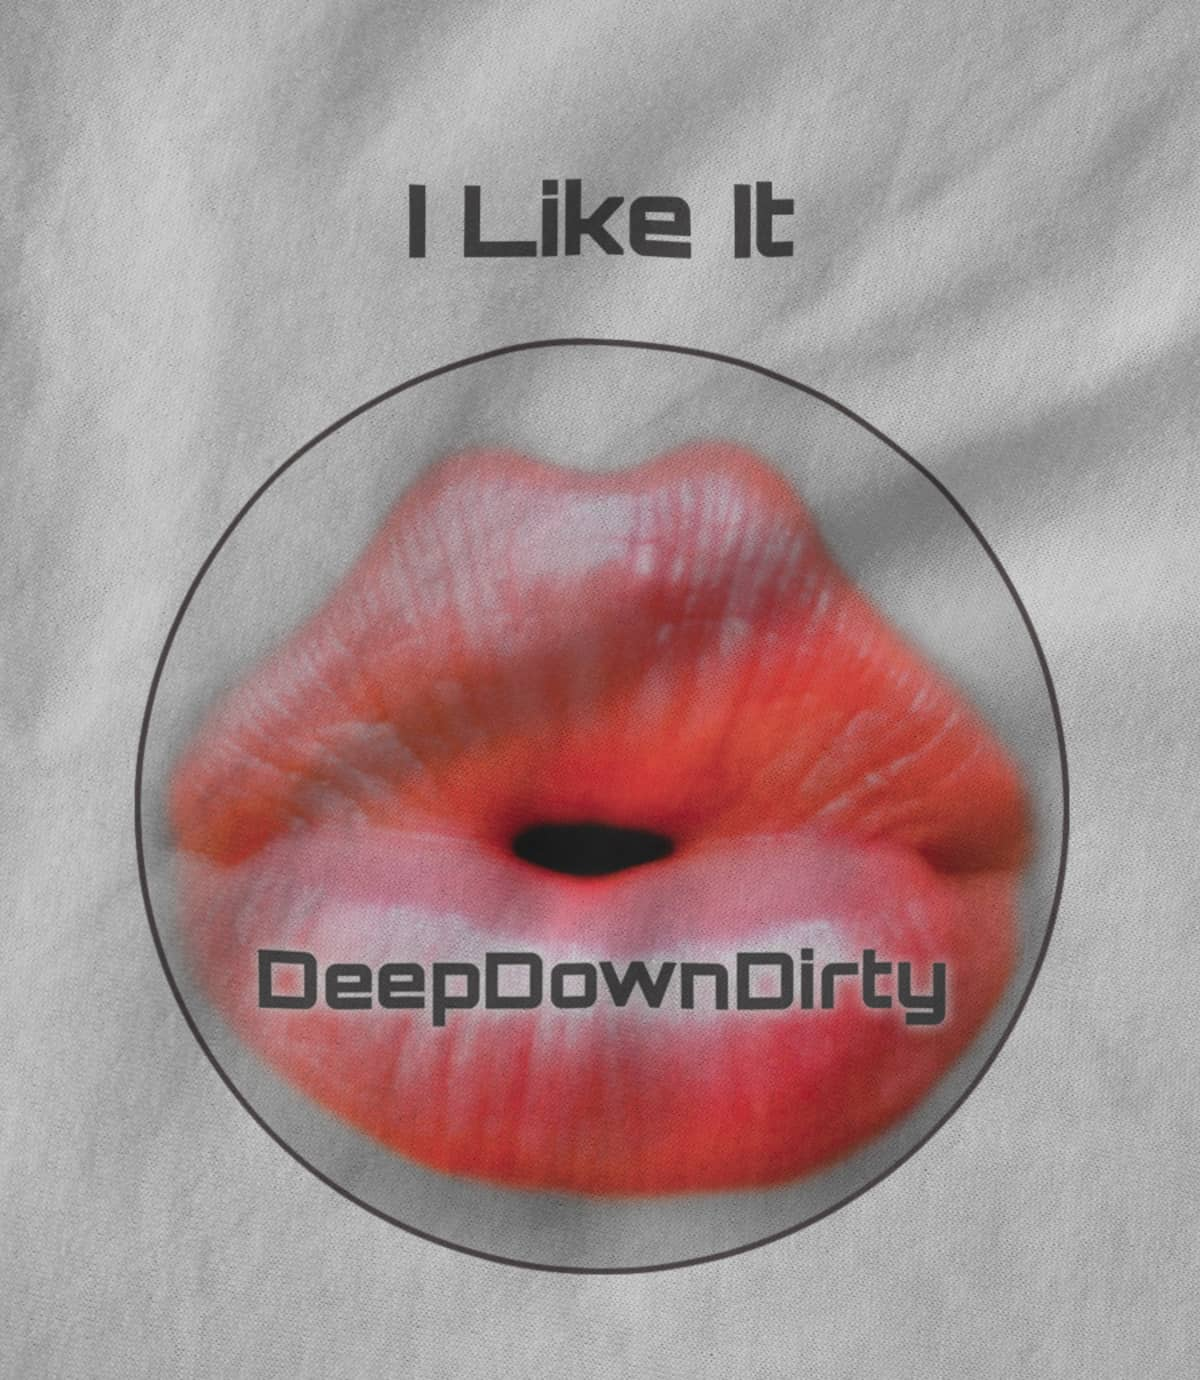 DeepDownDirty Record Label